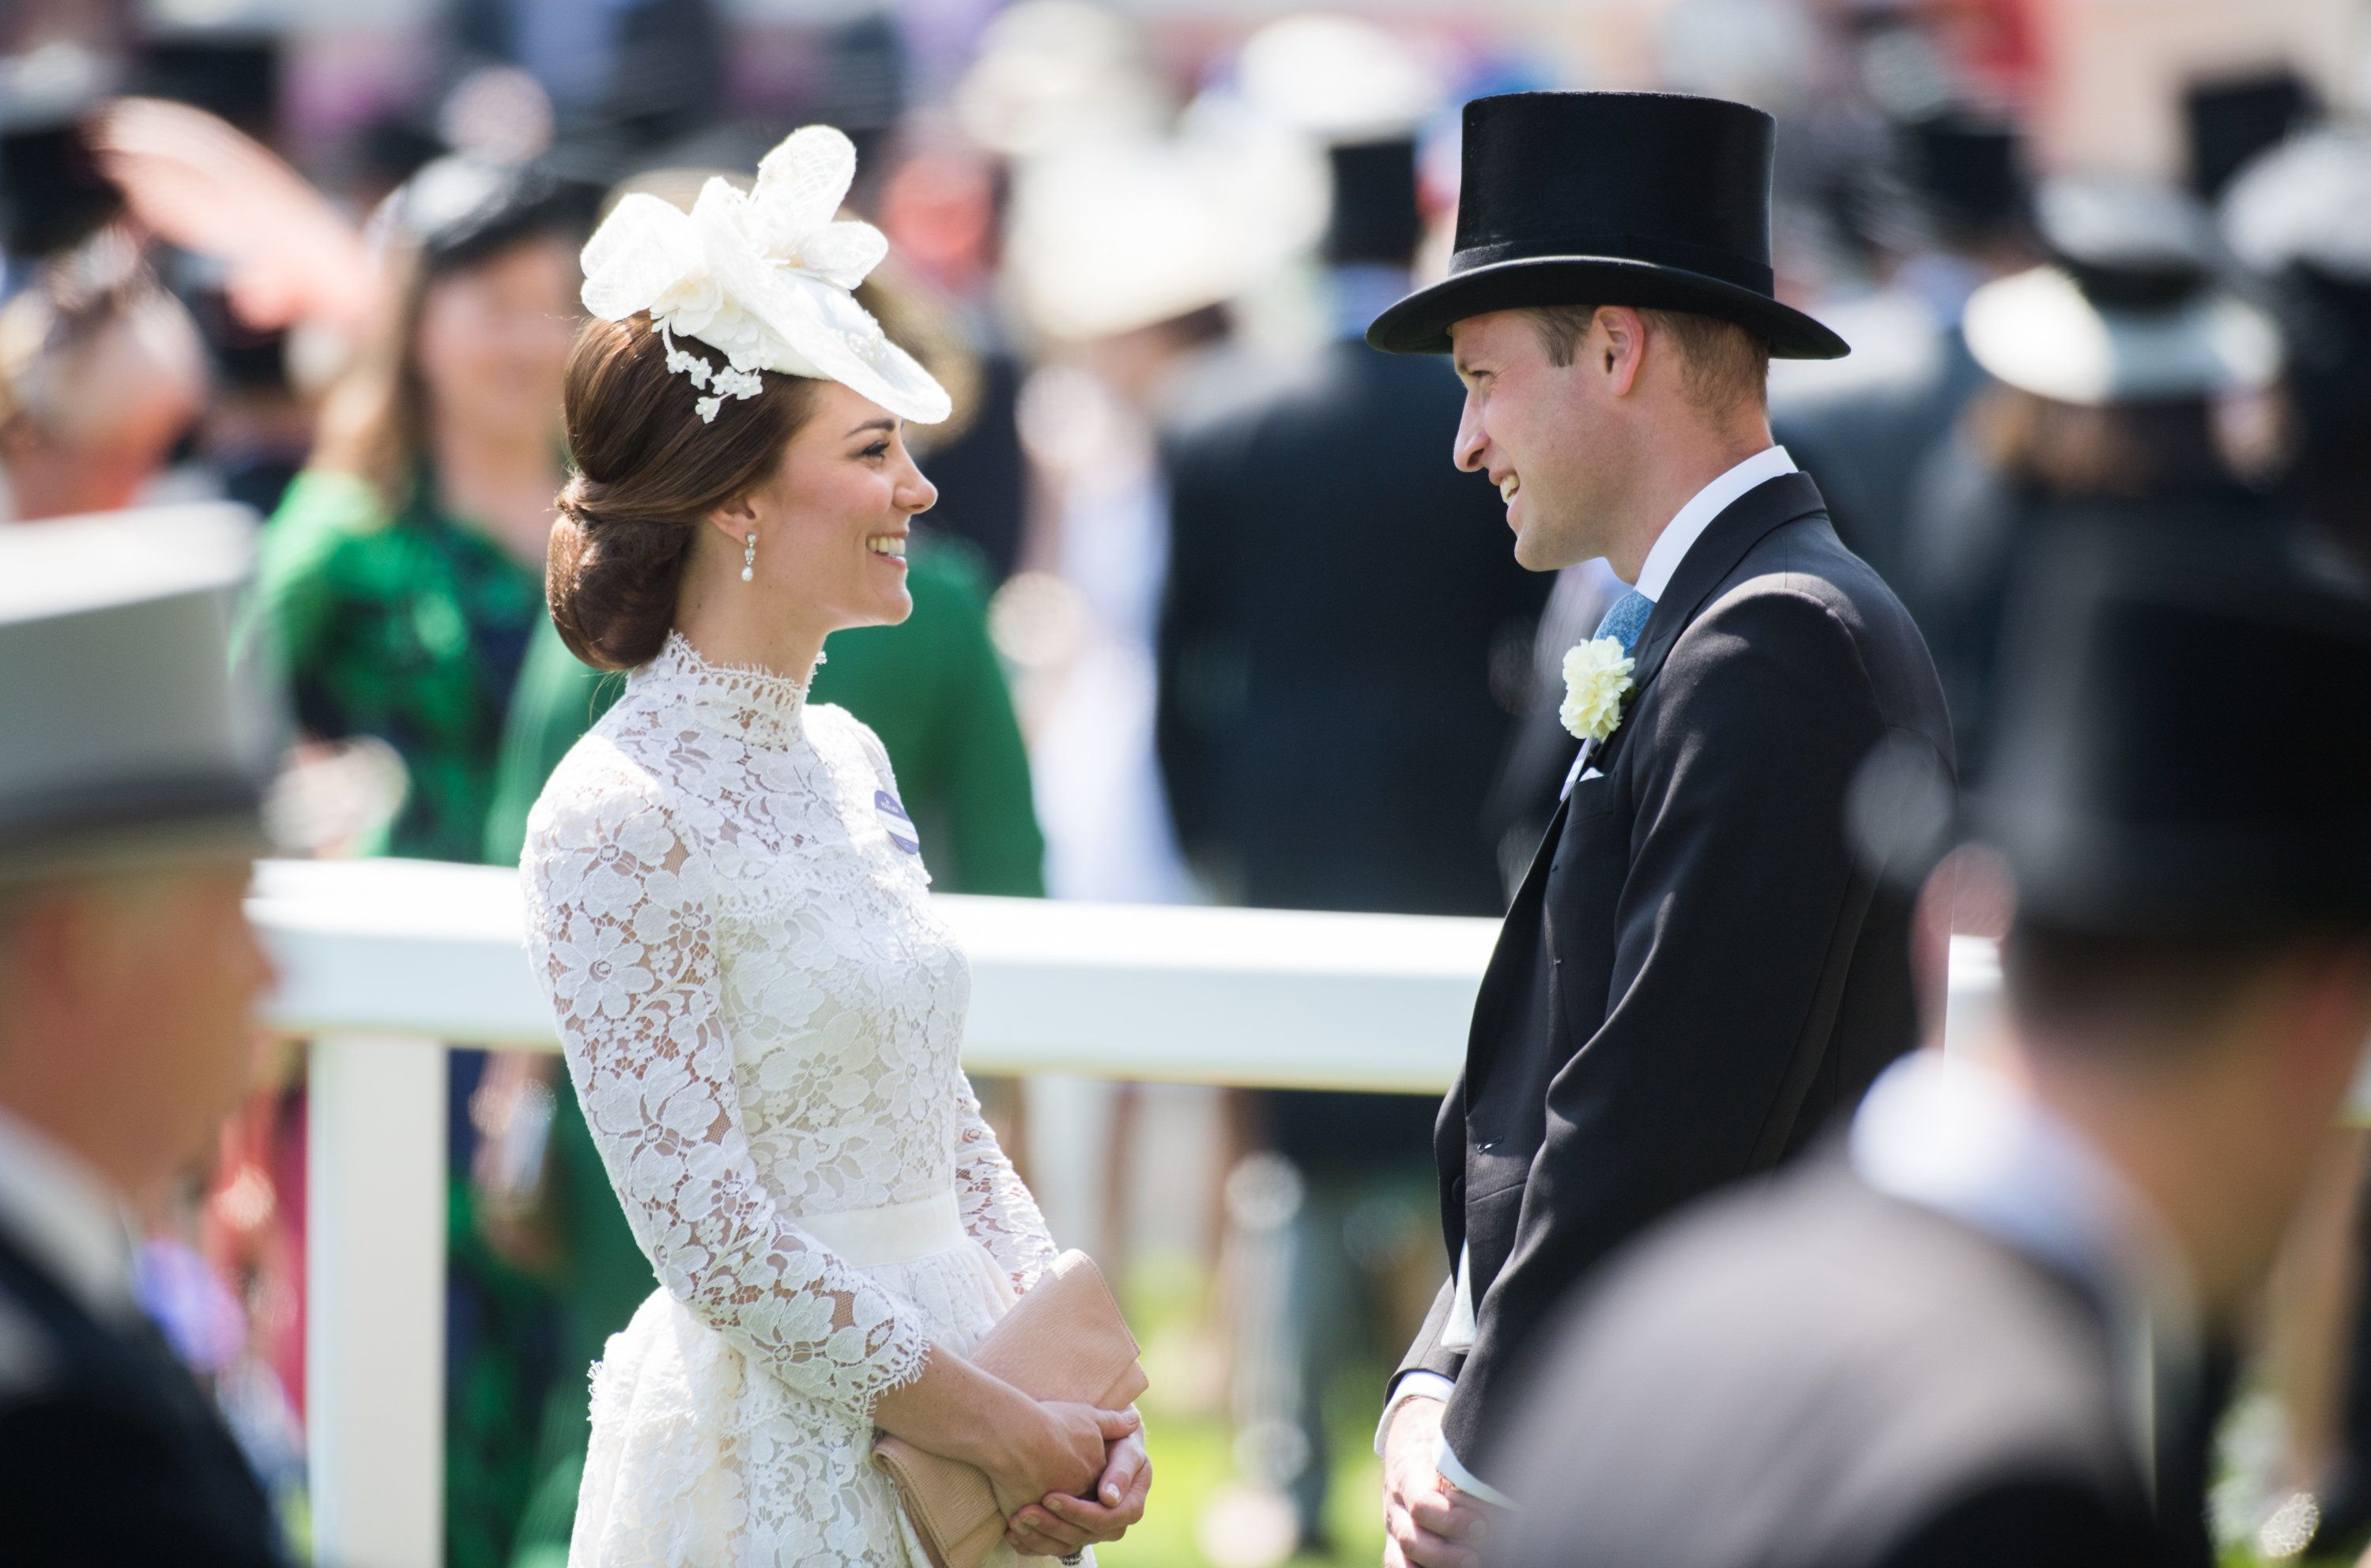 adorable new photos of will and kate will give you royal